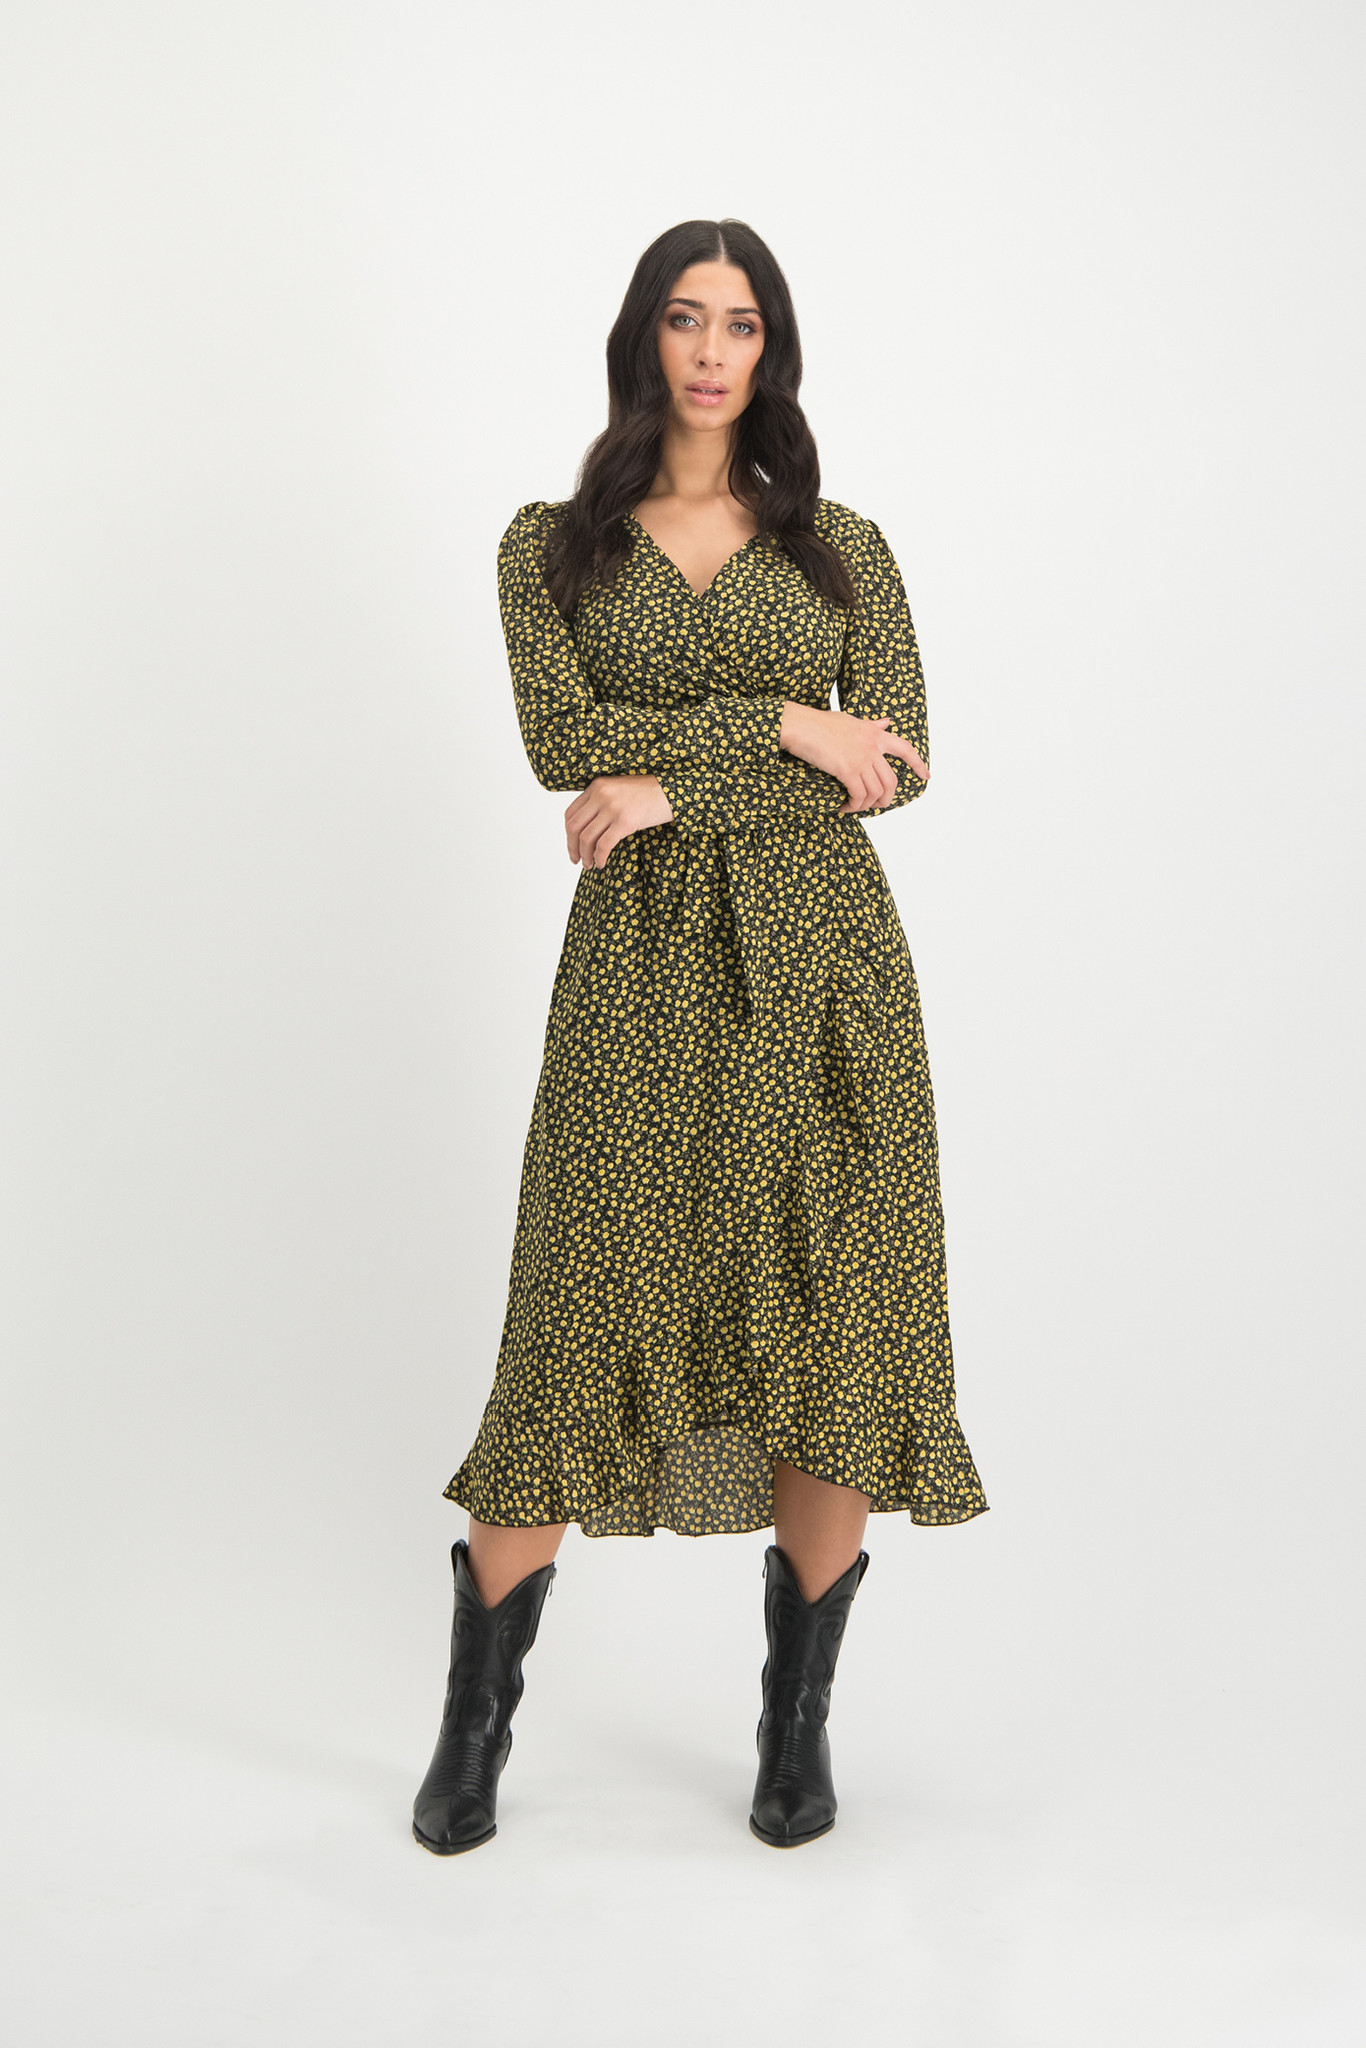 Lofty Manner Gele Bloemenprint Maxi Jurk Irma